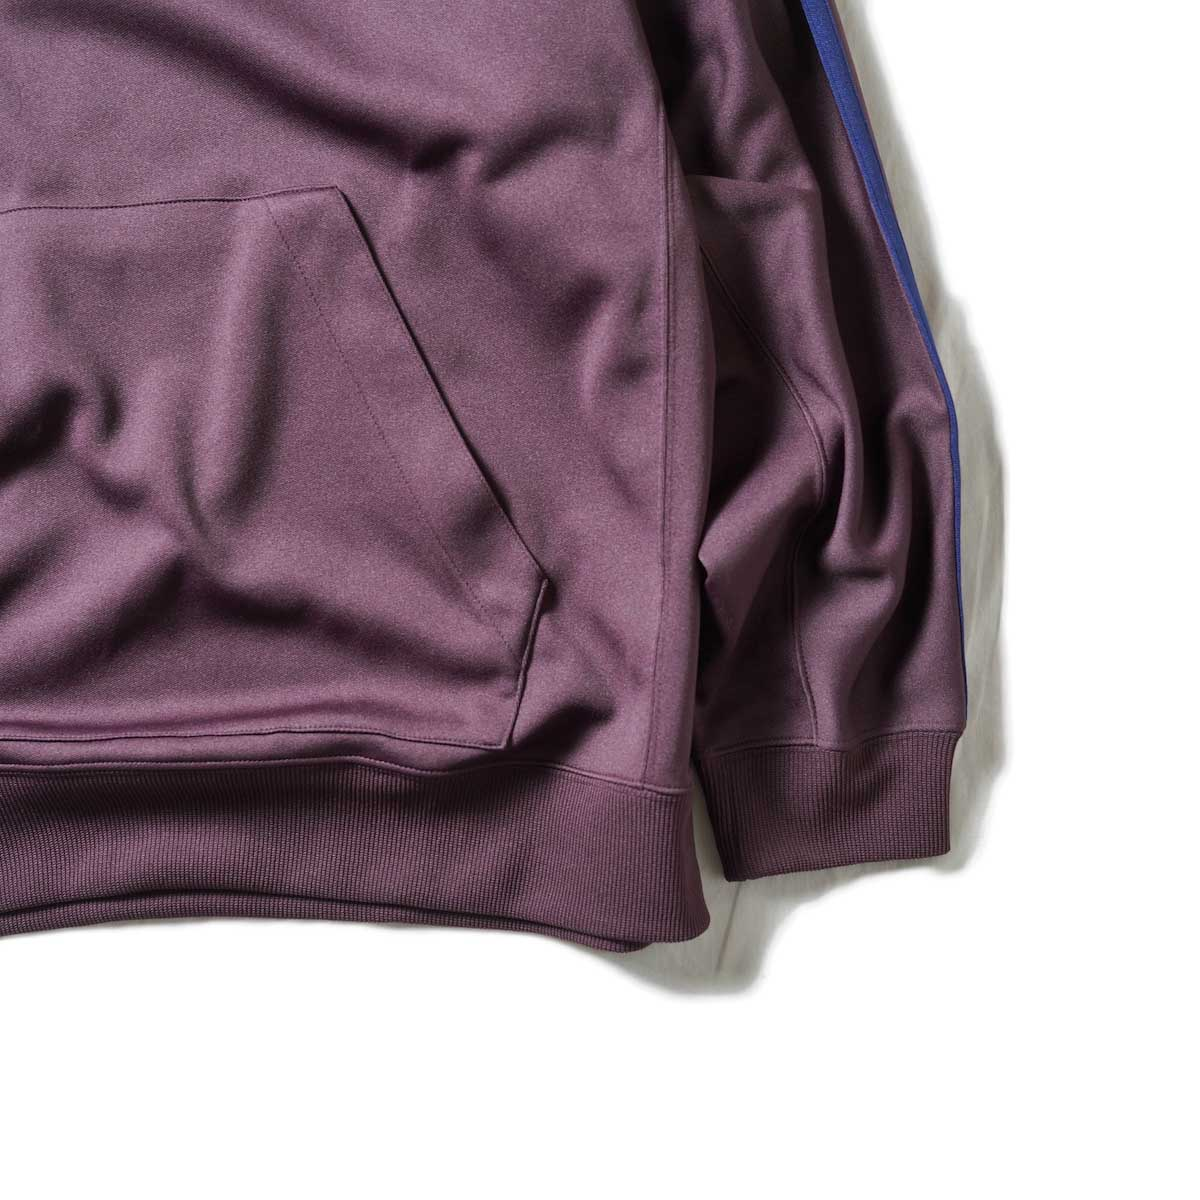 South2 West8 / Trainer Hoody - Poly Smooth (Burgundy)袖、裾